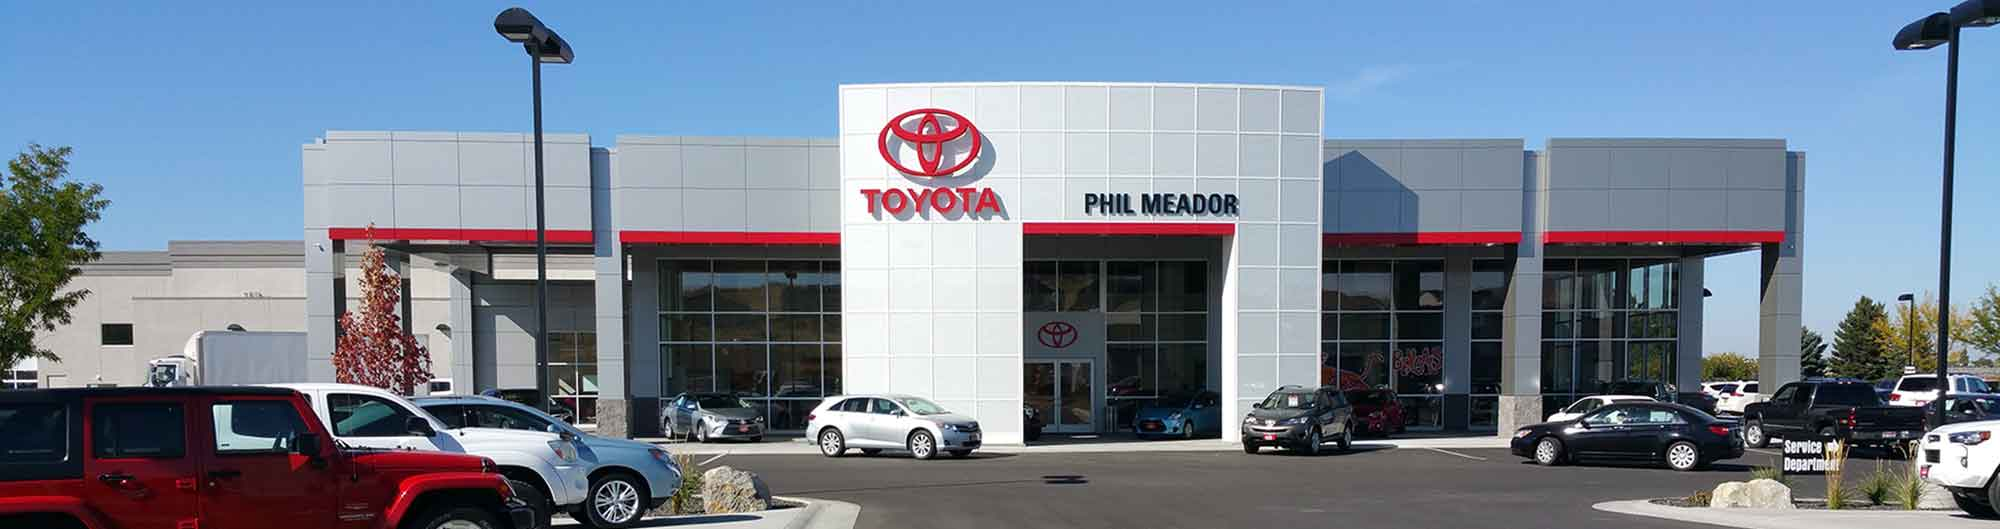 Phil Meador Toyota